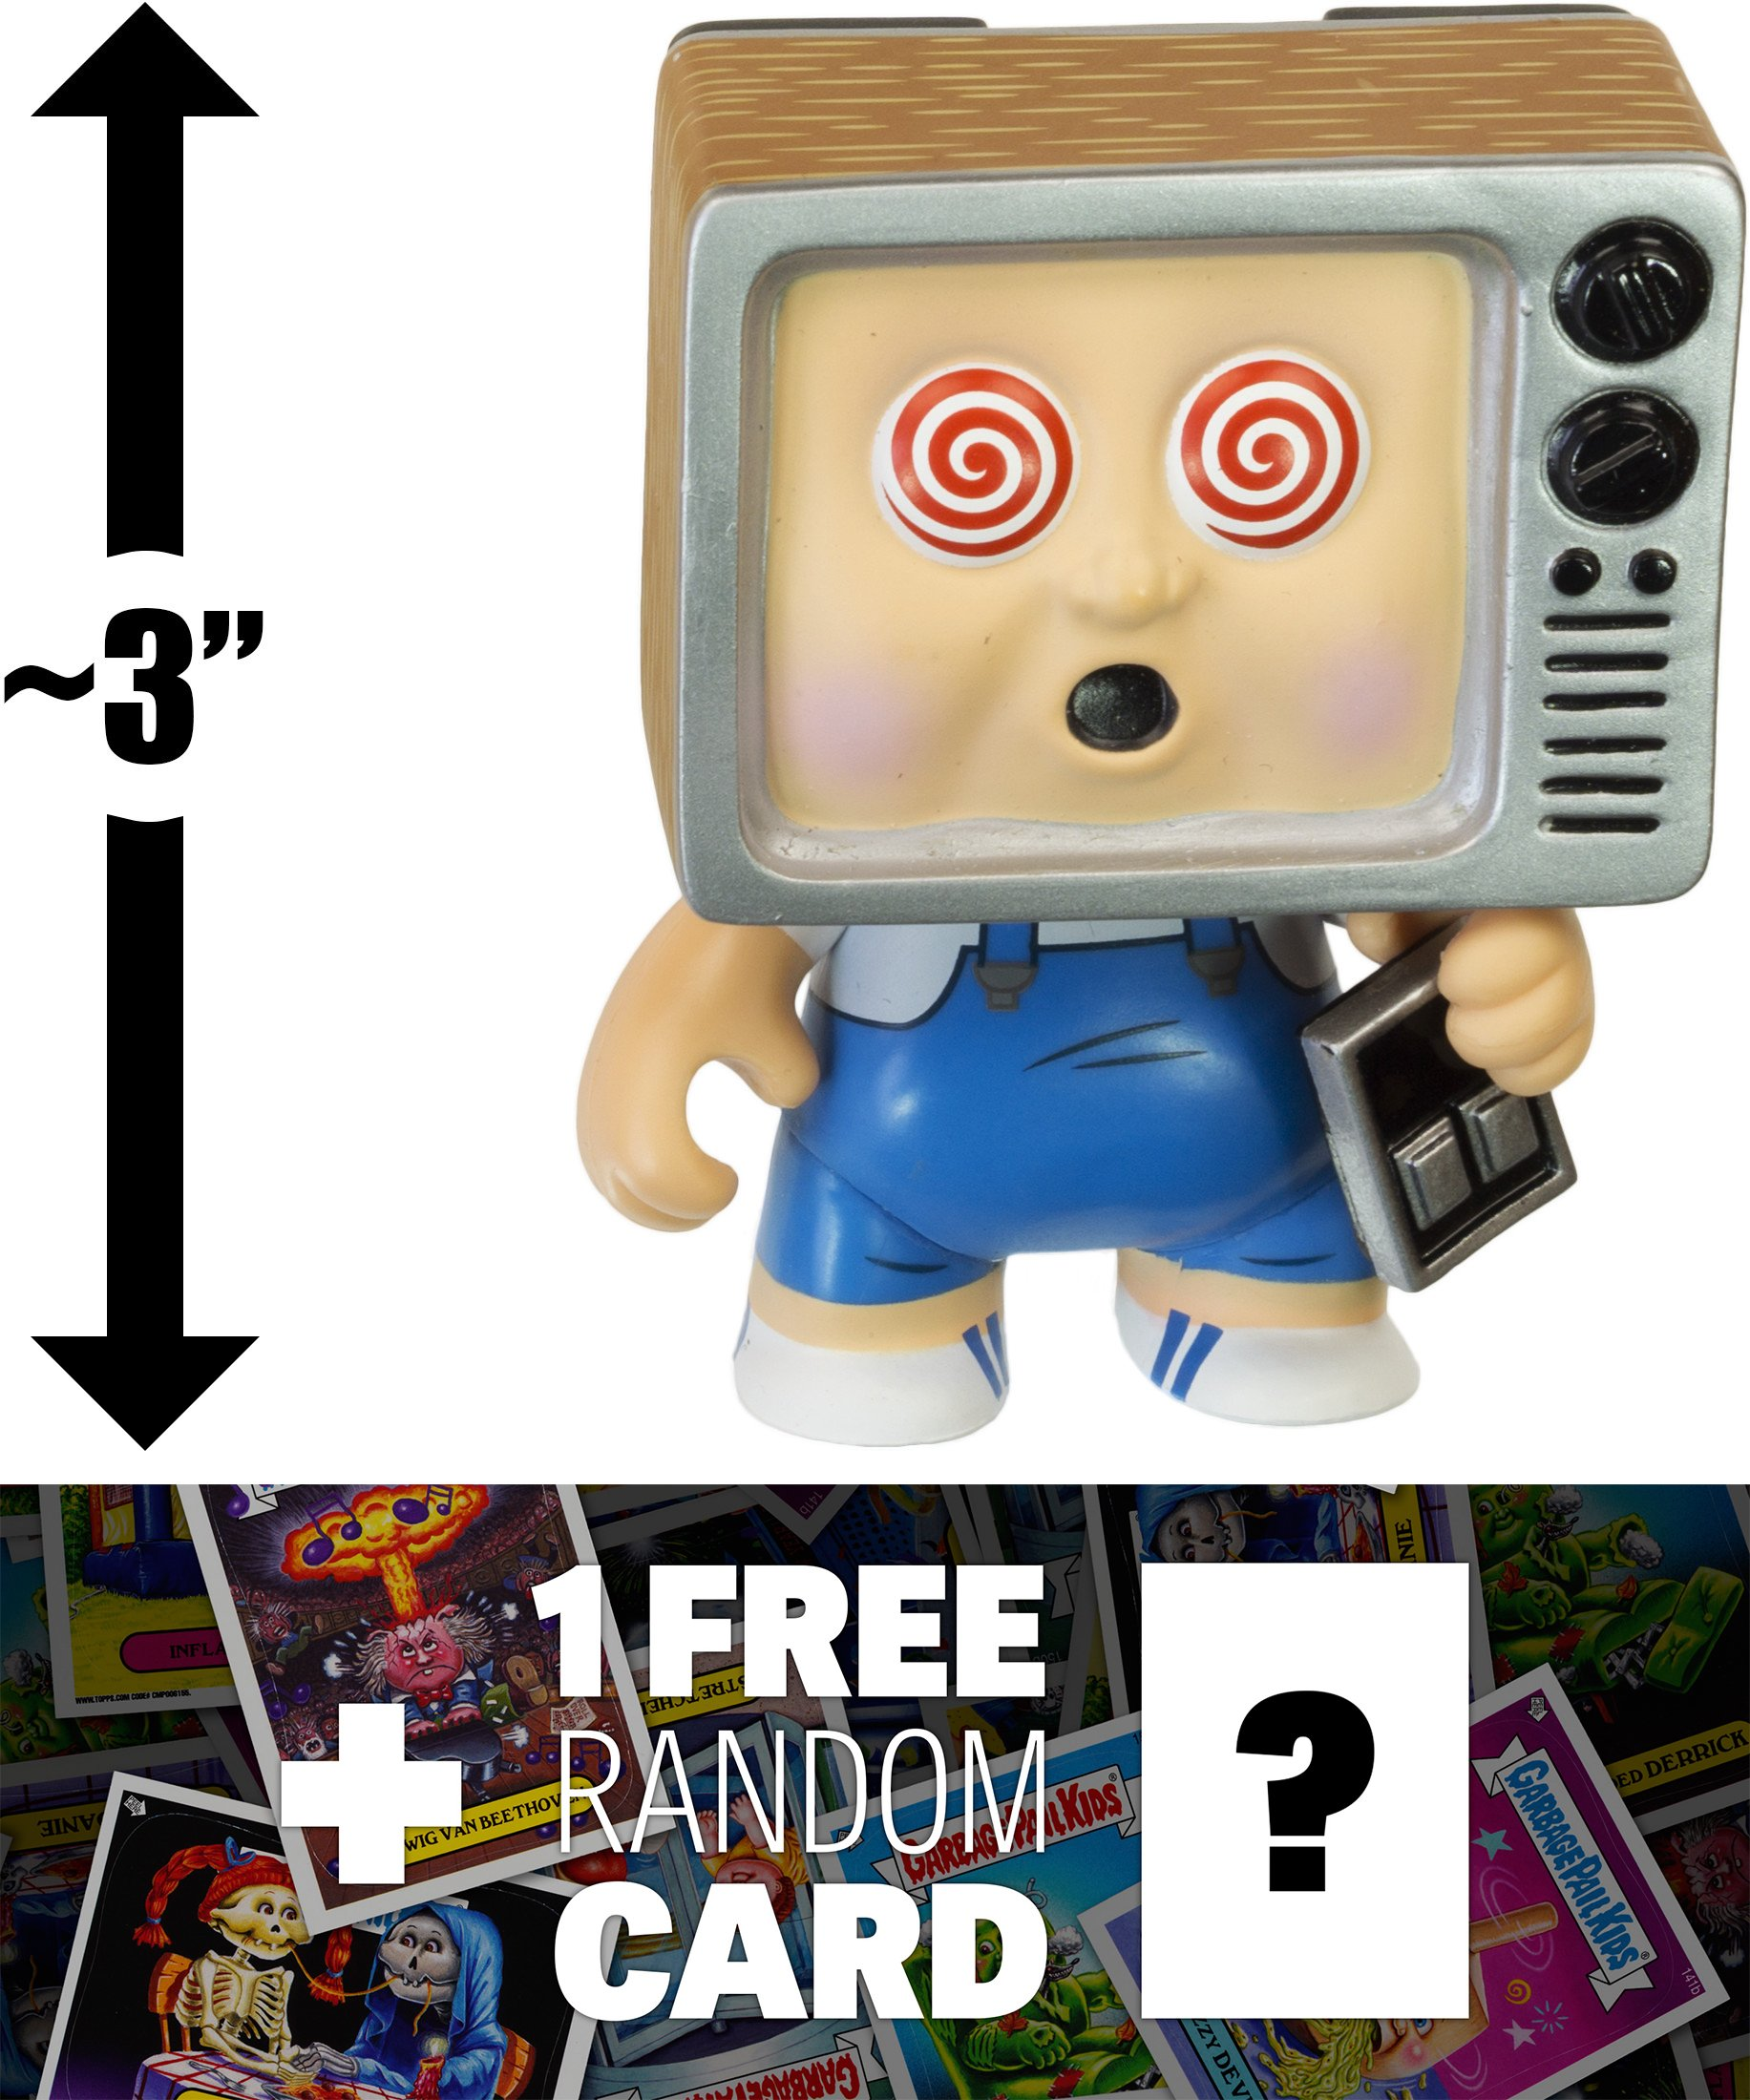 Teevee Stevie: ~3'' Garbage Pail Kids x Funko Mystery Minis Mini-Figure Series #1 + 1 FREE GPK Trading Card/Sticker Bundle [55387]